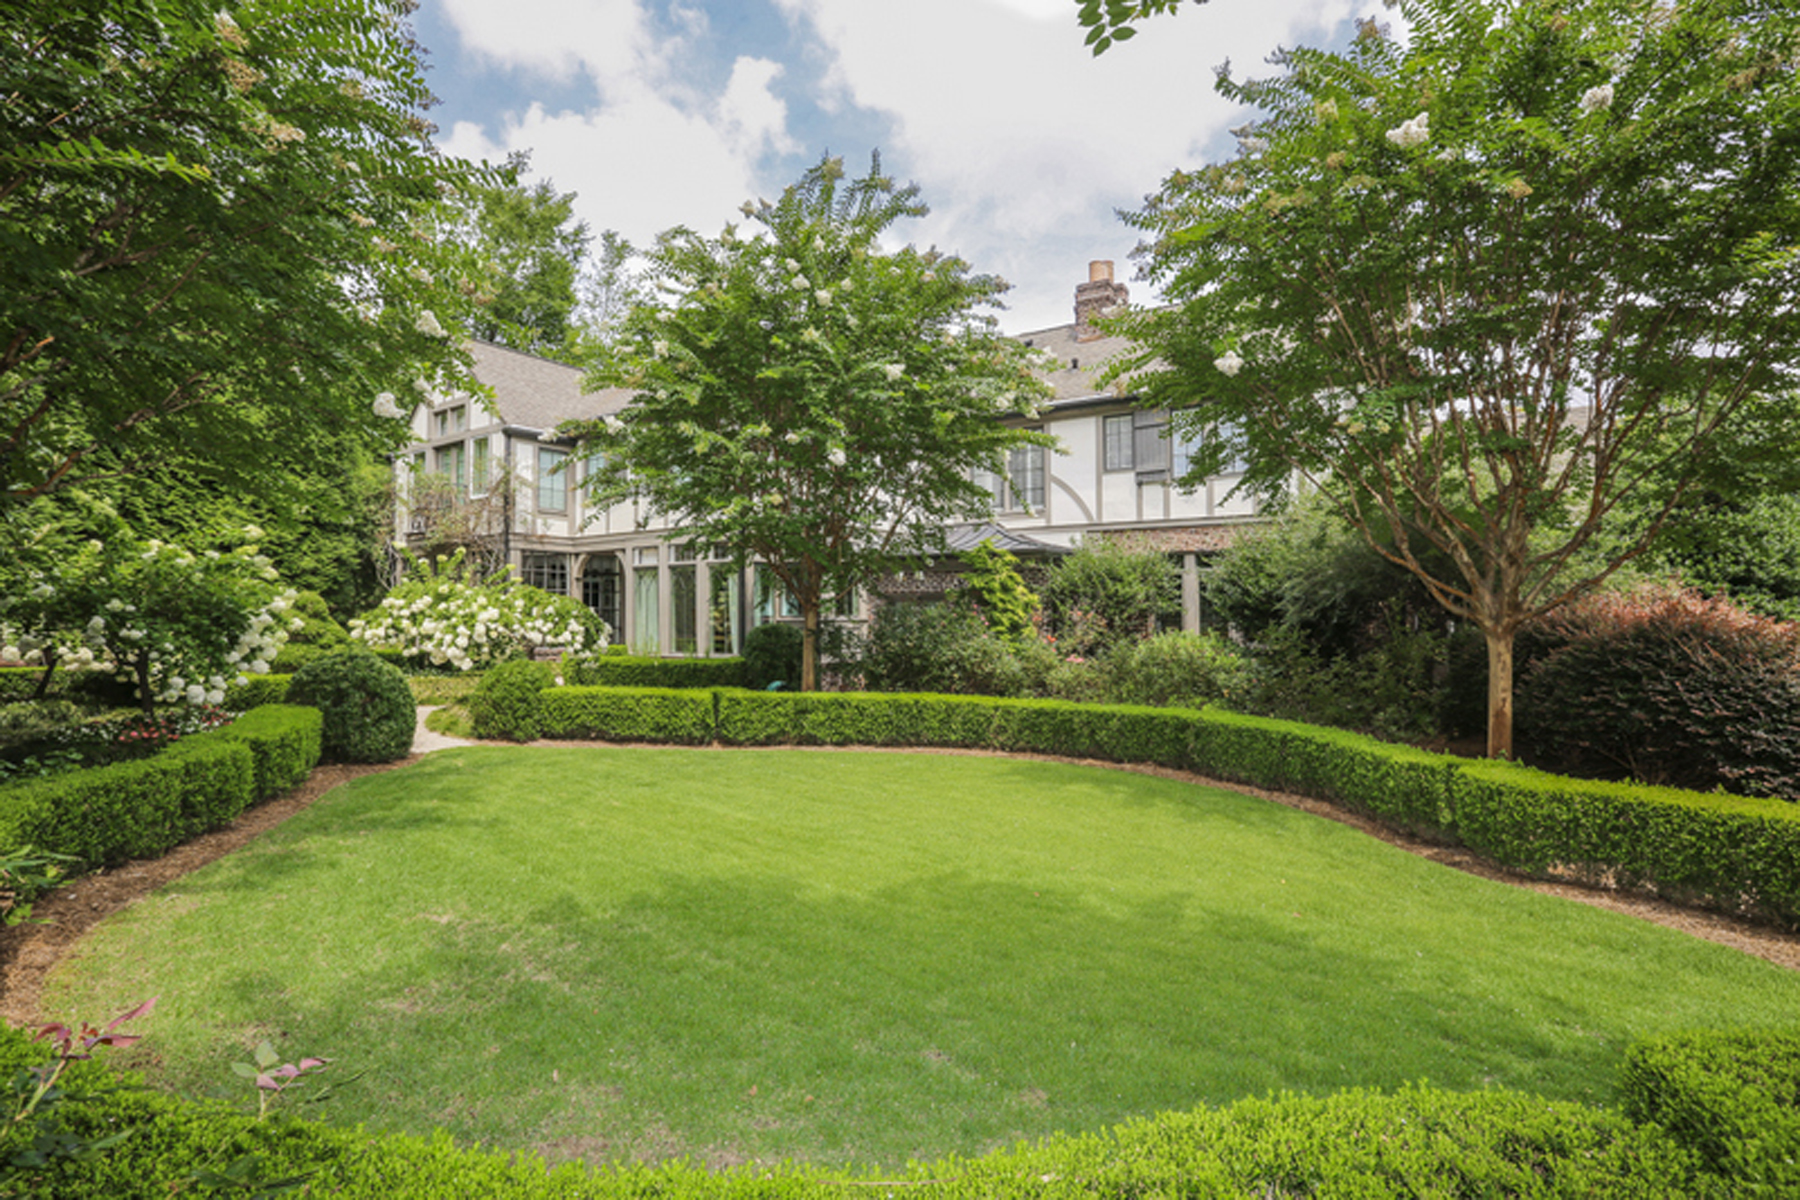 Single Family Home for Sale at Fabulous Renovation With Total Privacy In The Middle Of Buckhead 340 Manor Ridge Drive NW Atlanta, Georgia 30327 United States